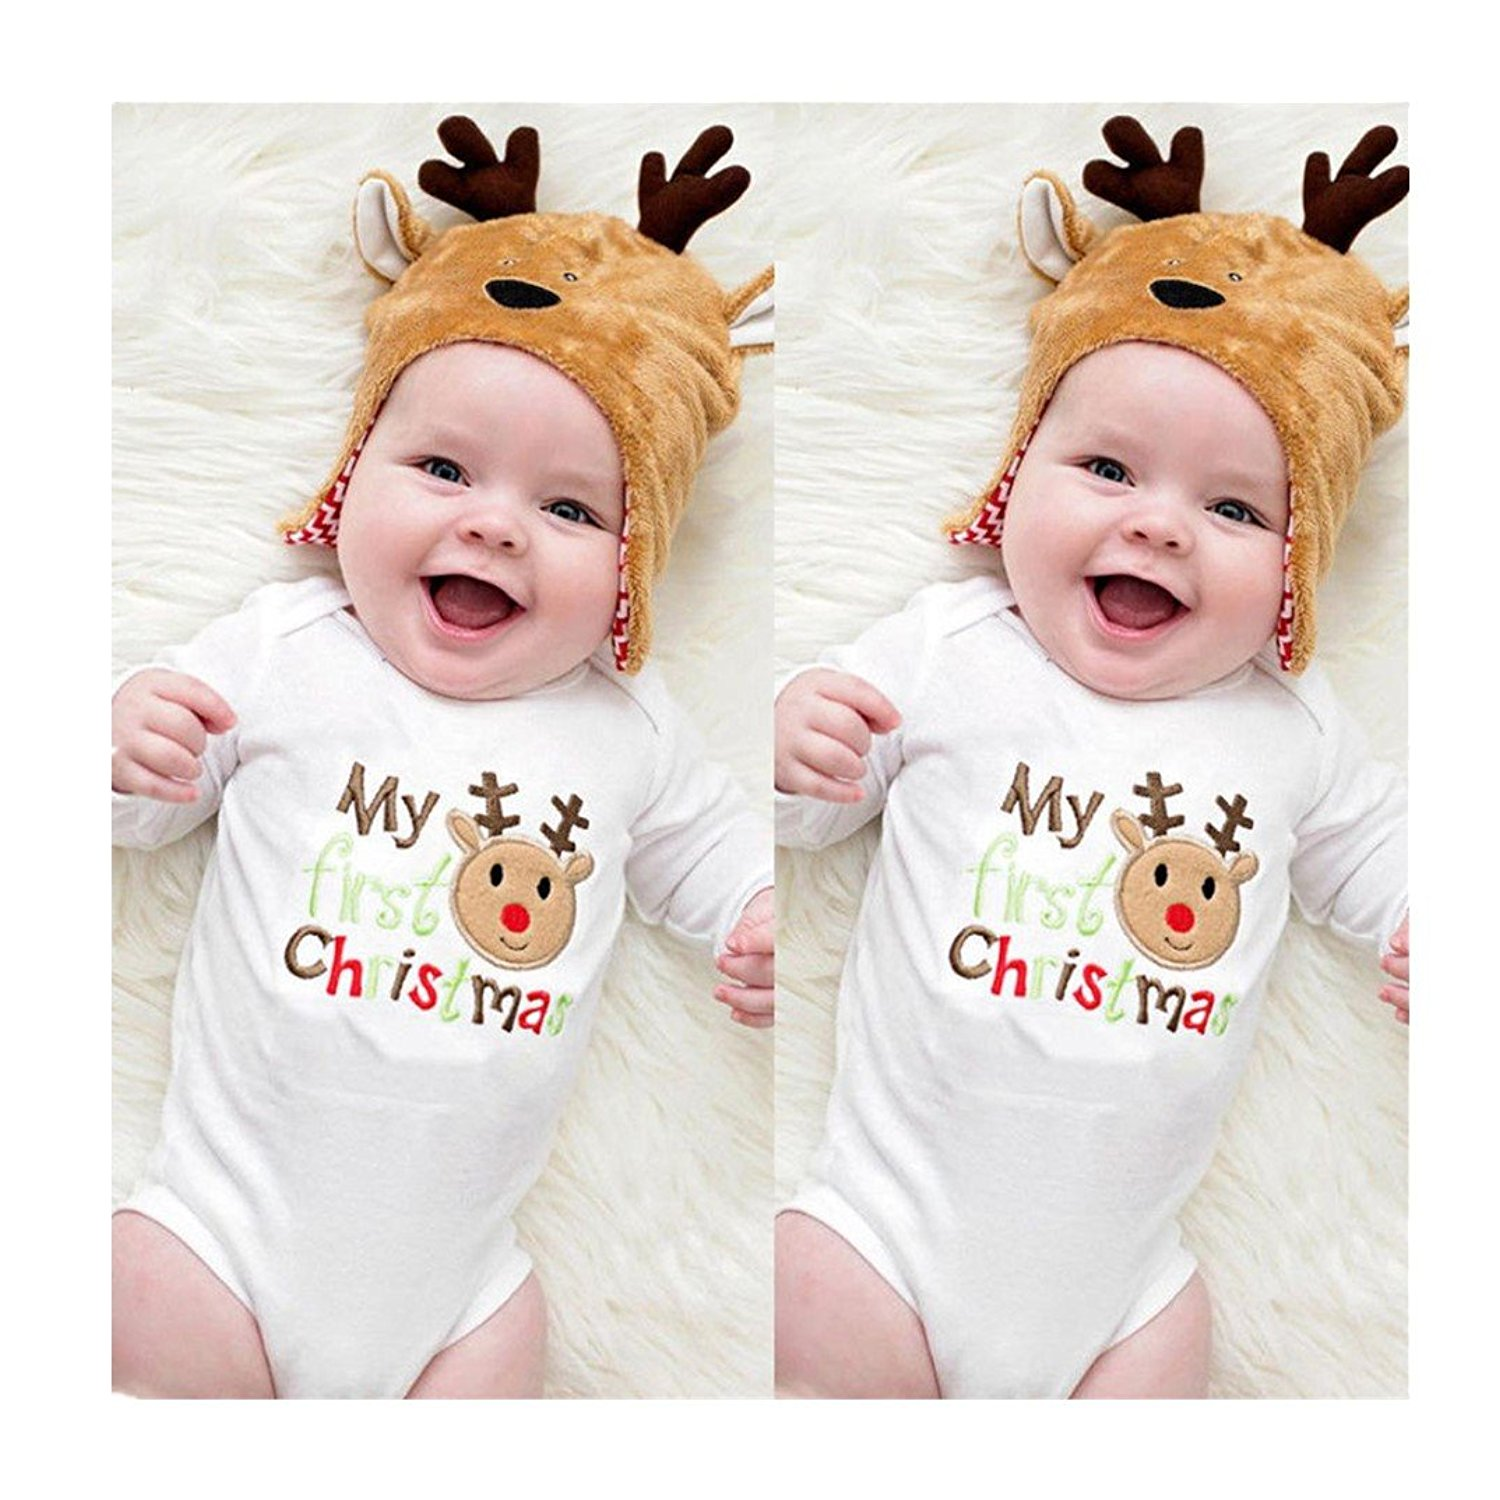 bf0331394cc057 Get Quotations · Efaster Christmas Newborn Cute Kids Baby Romper Jumpsuit  Bodysuit Clothes Outfit